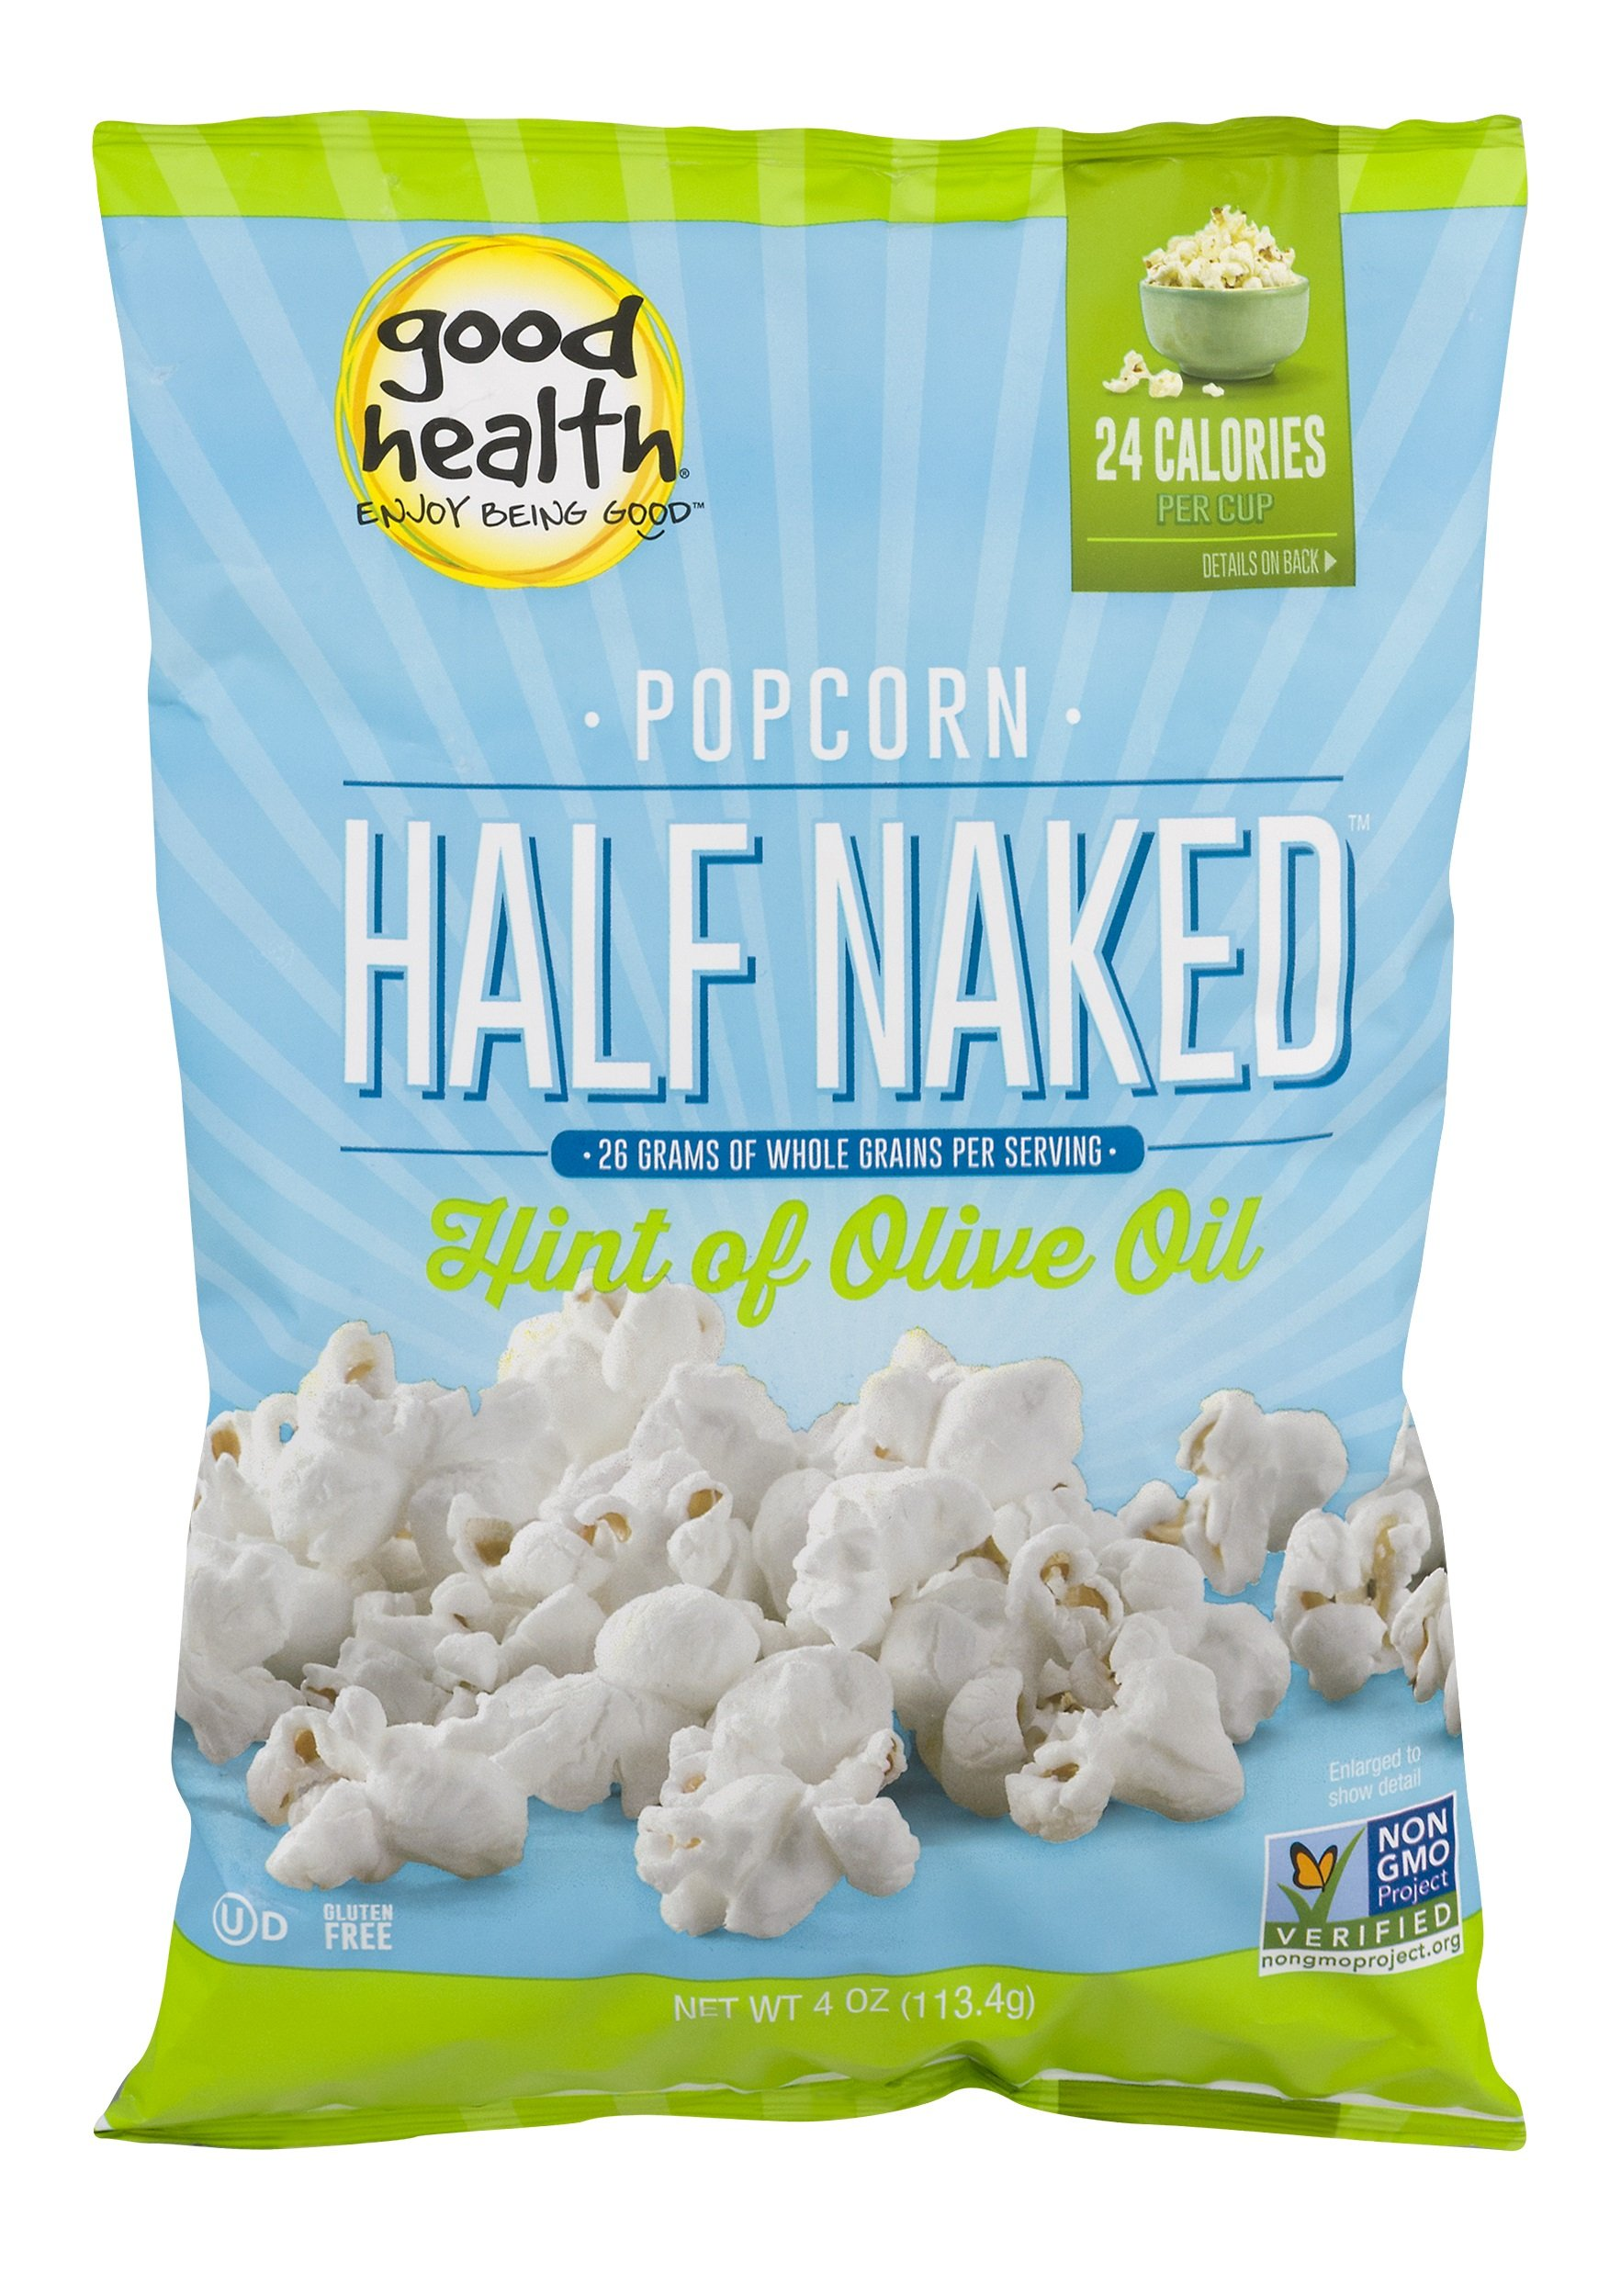 Good Health Half Naked Popcorn with a Hint of Olive Oil, 4-Ounce Bags (Pack of 9) by Goodhealth